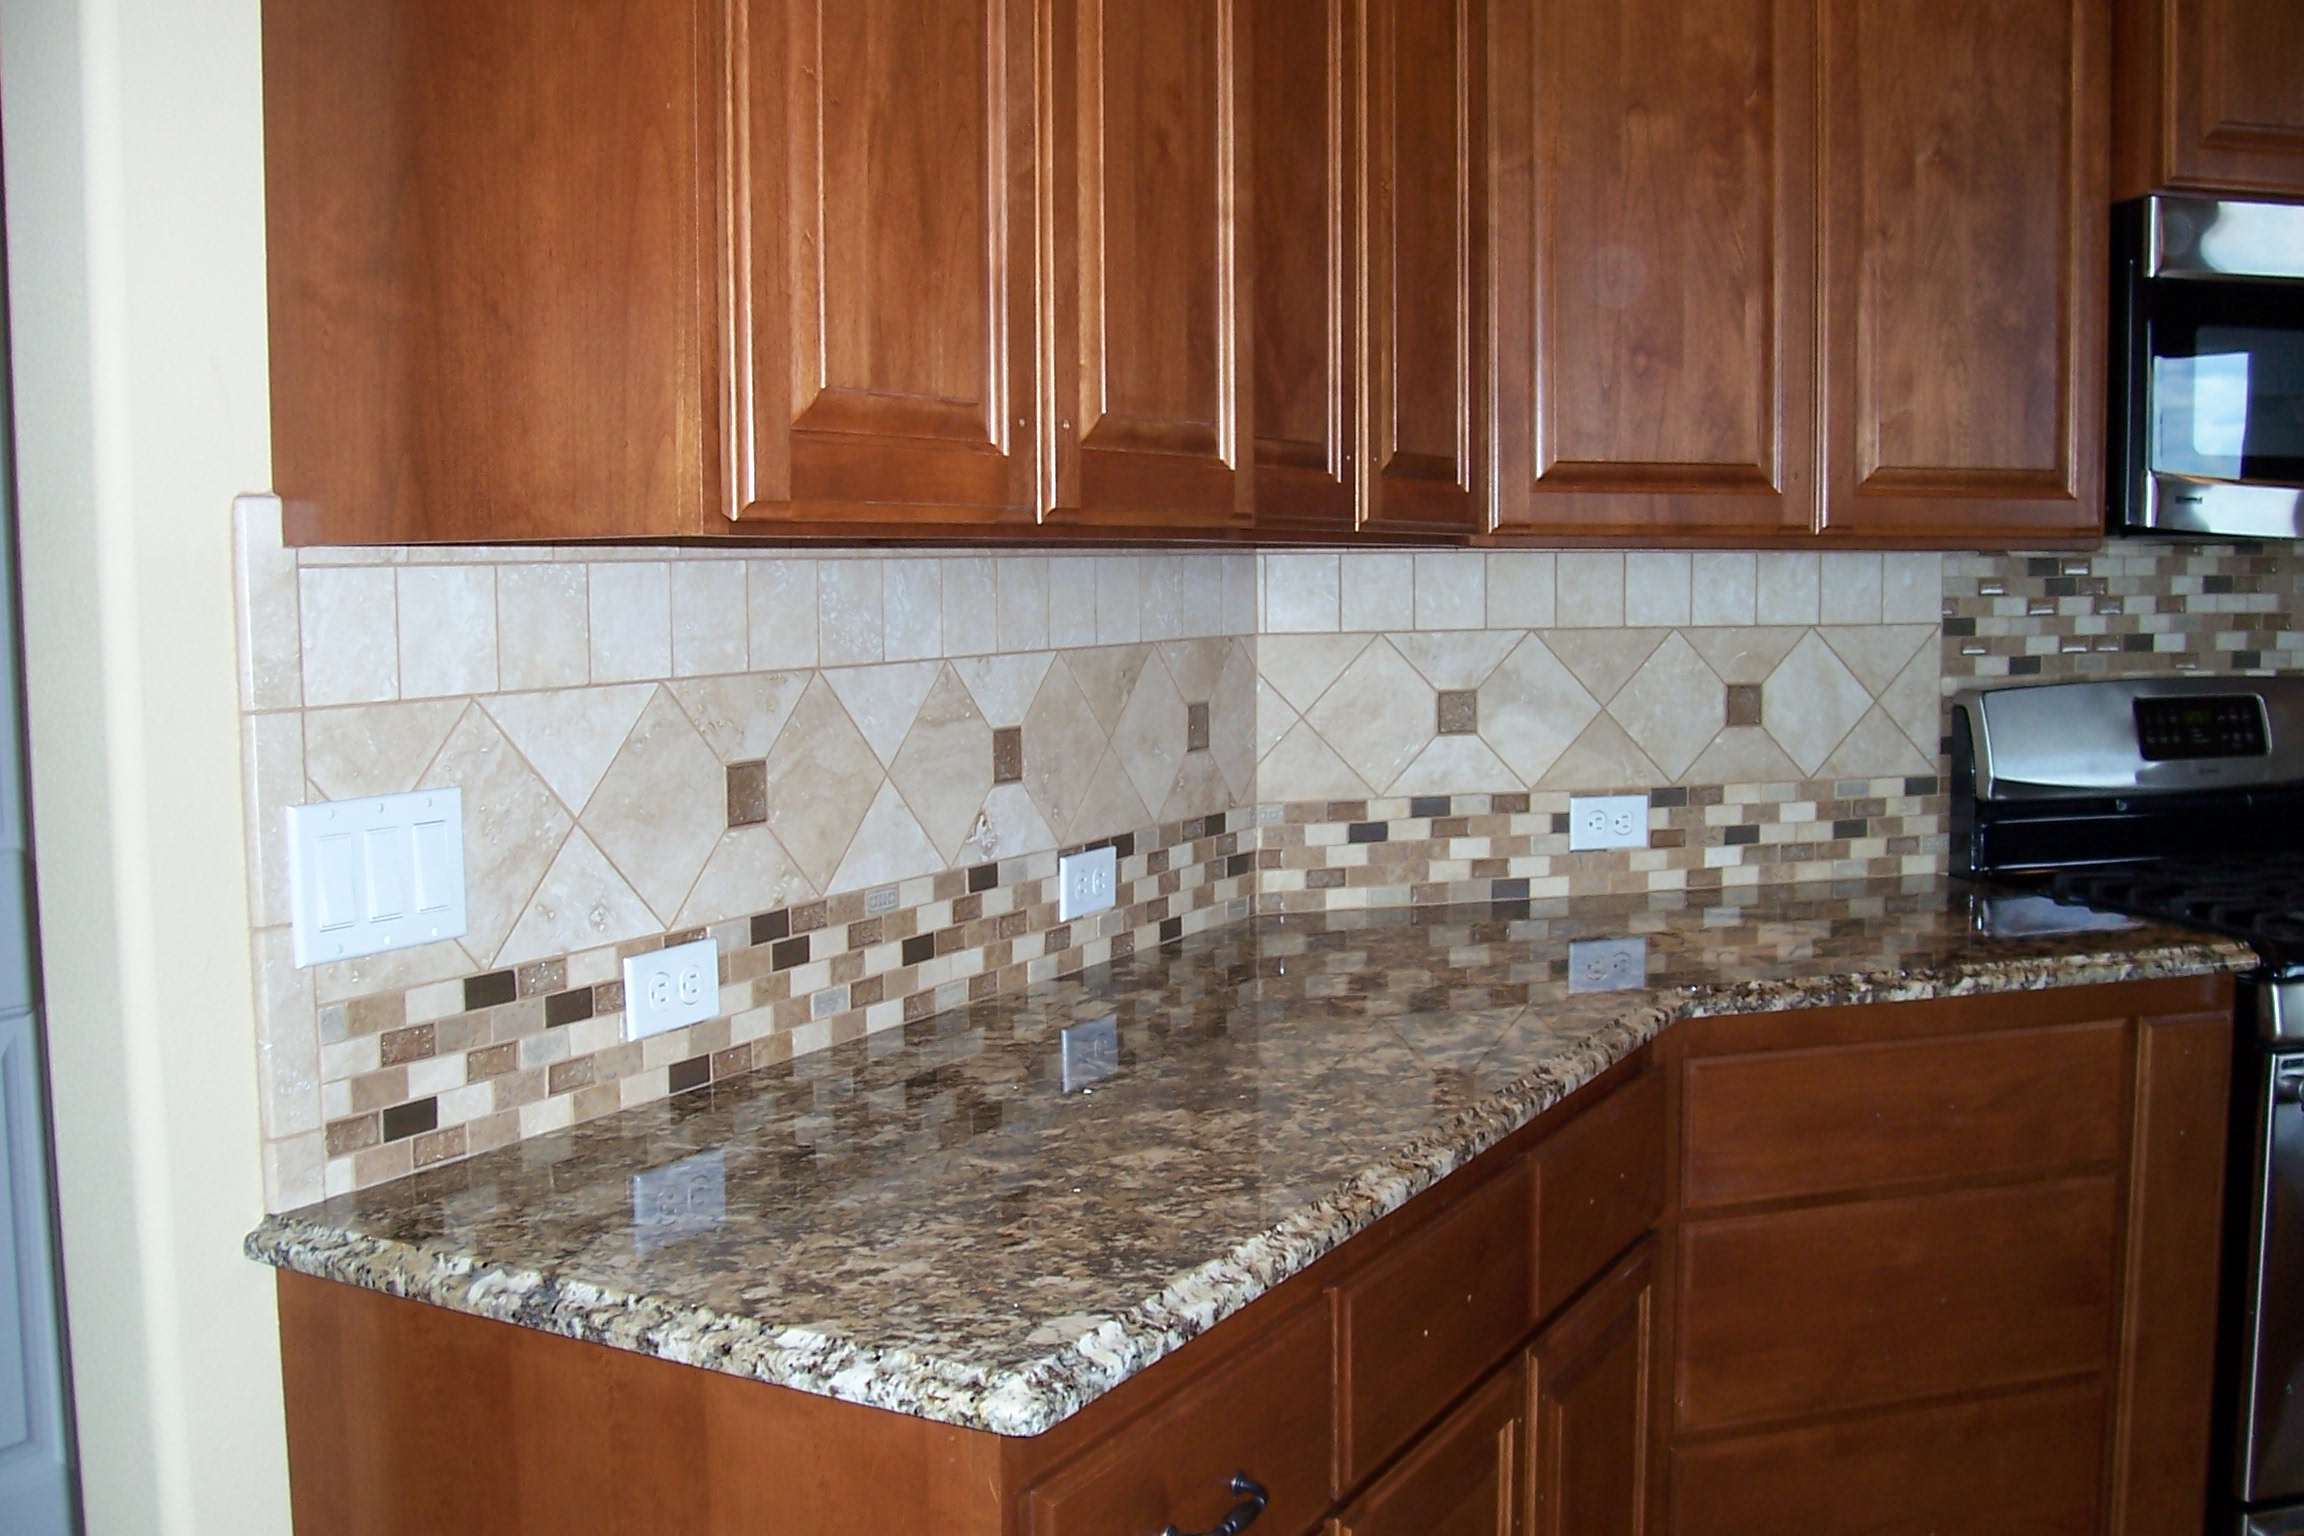 301 moved permanently - Kitchen tile backsplash photos ...